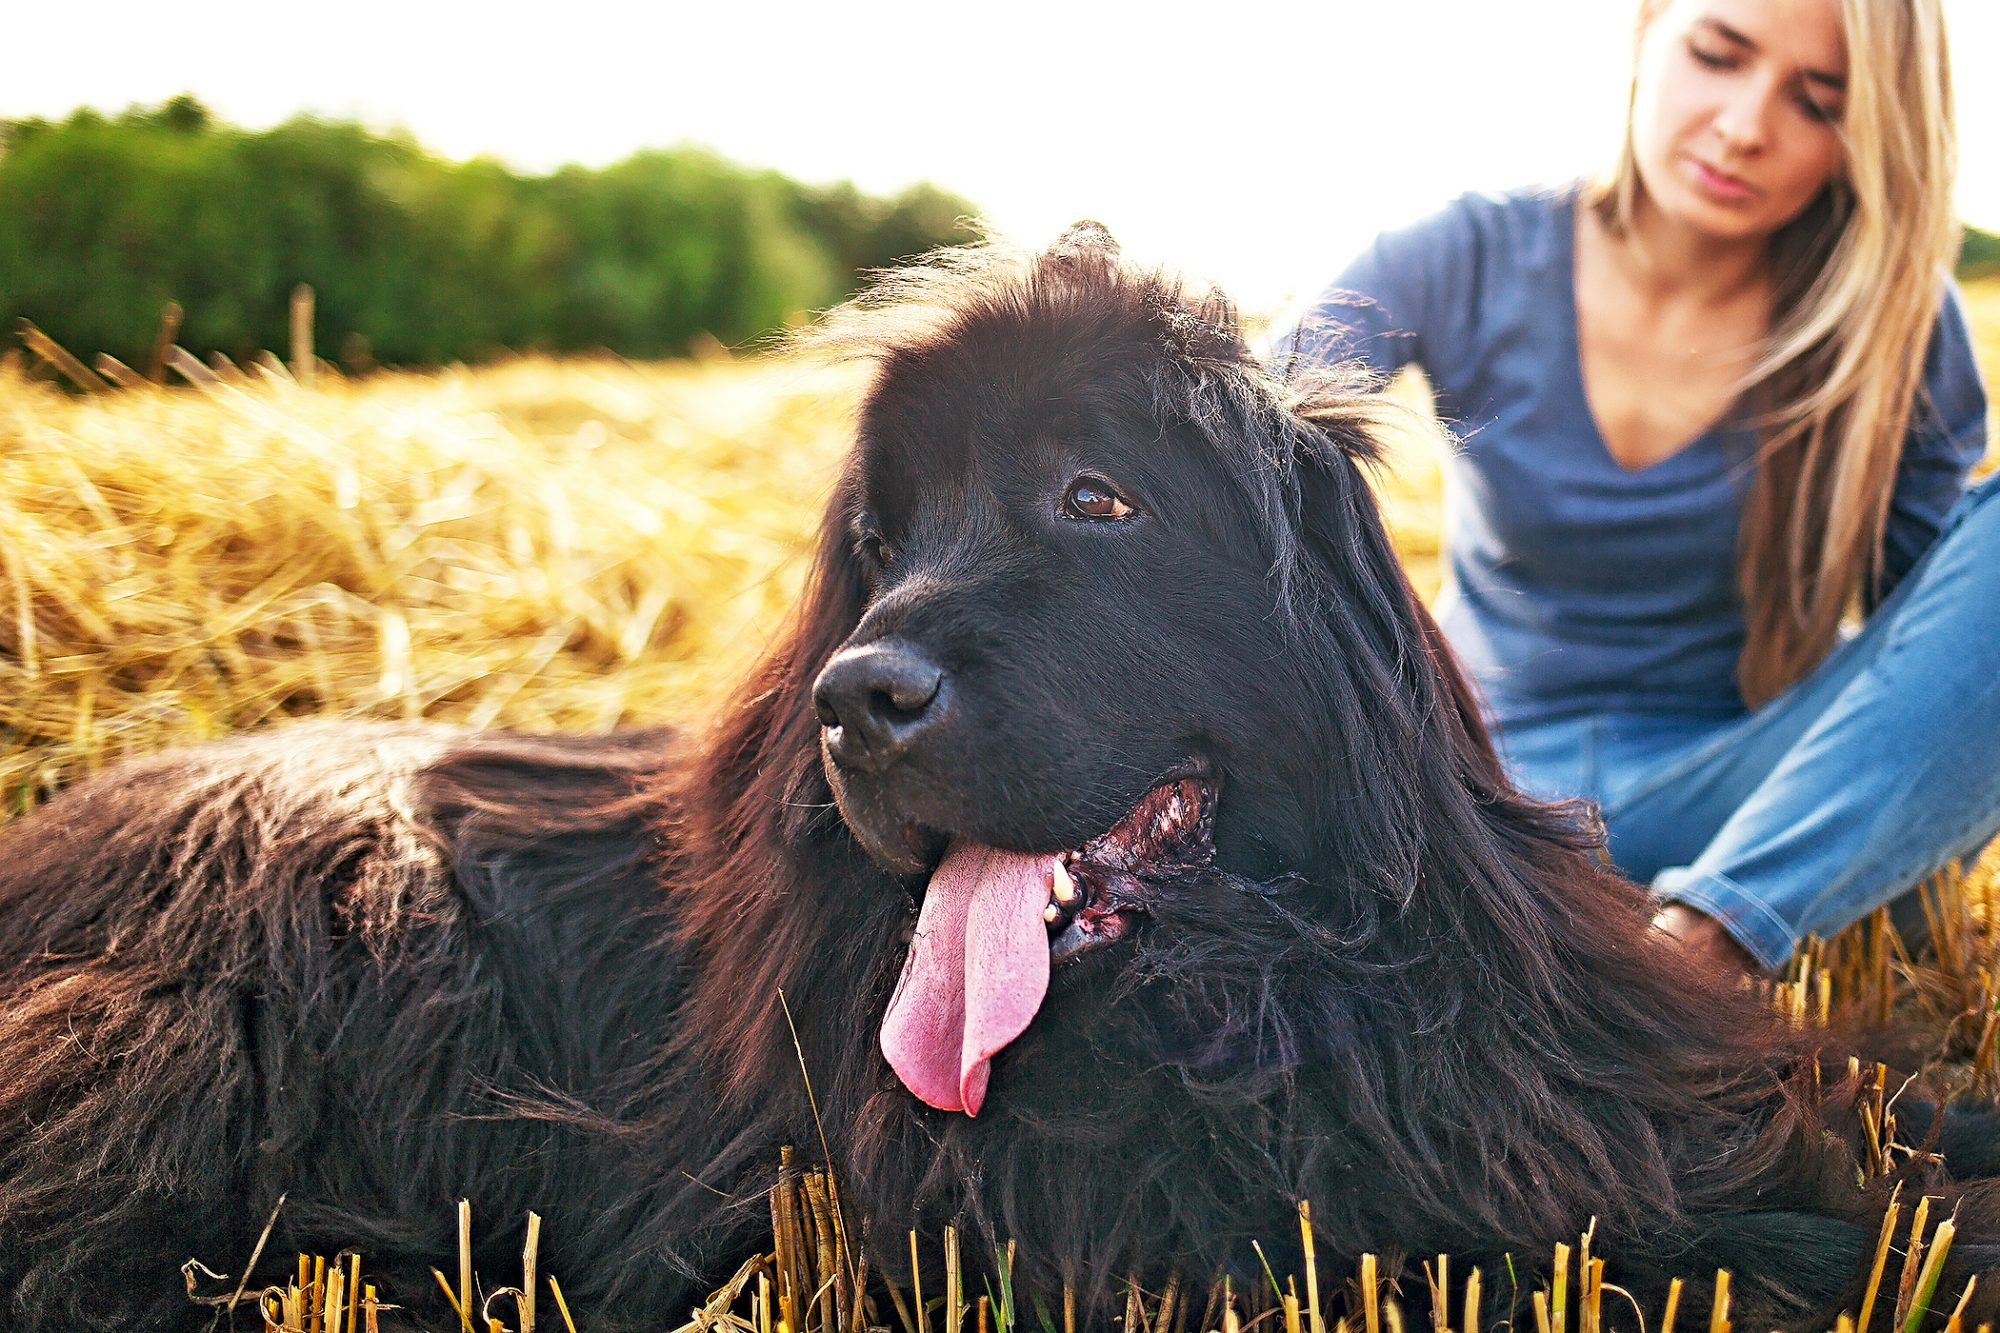 newfoundland dog lying in a in field with her tongue out next to a blonde woman